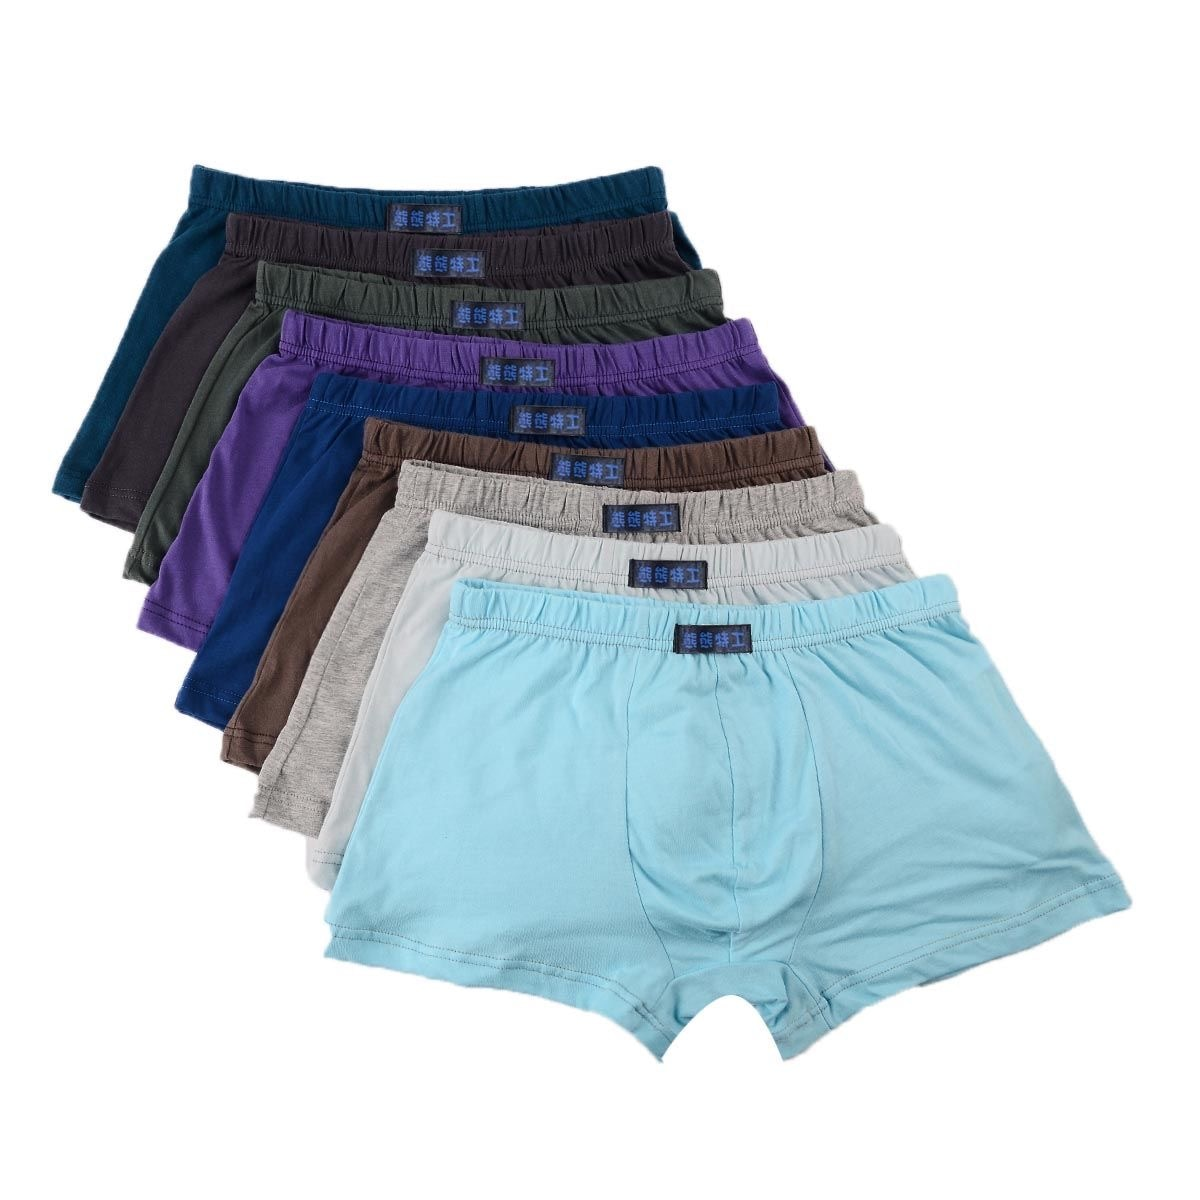 Mens pure cotton plain corner breathable solid color boxer briefs sweat absorption sexy big fat guy loose bottom pants